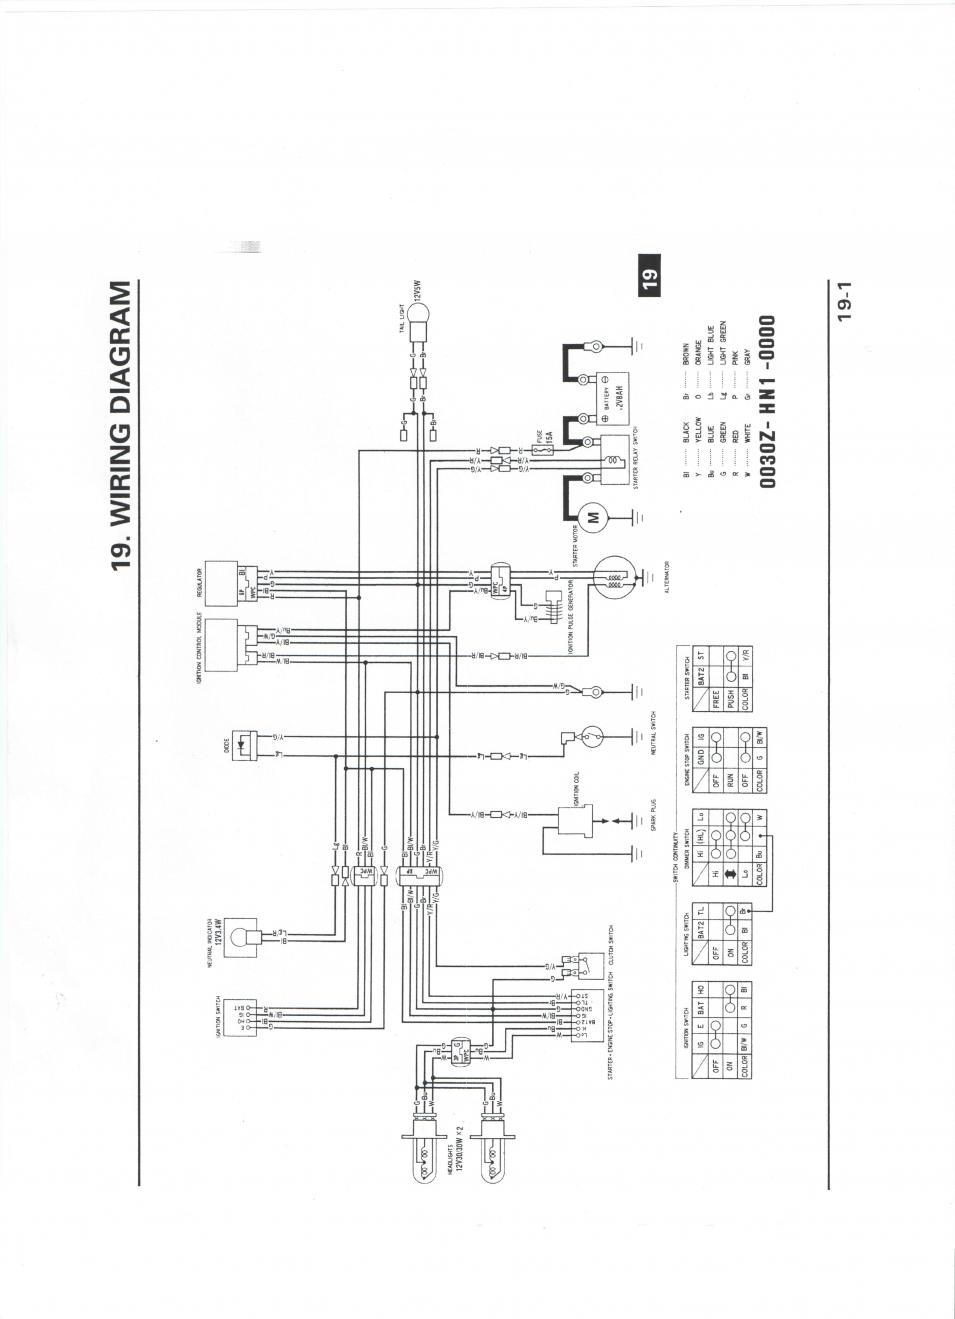 01 Honda 400ex Wiring Diagram | Wiring Diagram on ktm wiring diagram, yamaha rhino wiring diagram, honda 400ex owners manual, honda 400ex torque specs, yamaha blaster wiring diagram, suzuki z400 wiring diagram, suzuki ltr 450 wiring diagram, honda 400ex transmission, suzuki lt500 wiring diagram, honda 400ex coil, yfz450r wiring diagram, yamaha raptor 250 wiring diagram, kawasaki wiring diagram, suzuki lt80 wiring diagram, honda trx 400 carb diagram, honda 400ex cylinder head, husaberg wiring diagram, honda 400ex parts, polaris magnum wiring diagram, honda 400ex ignition switch,